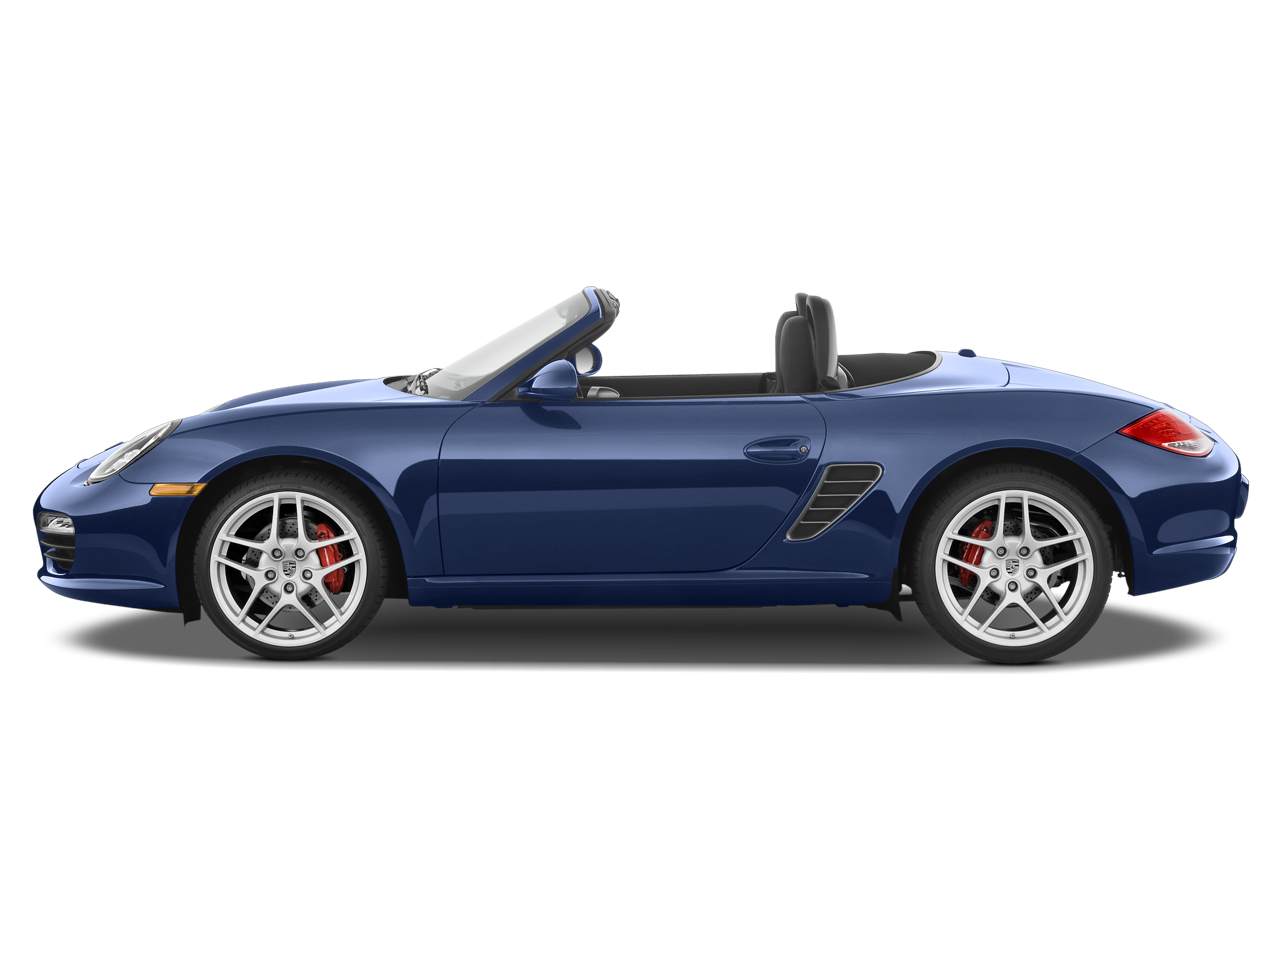 2009 porsche boxster s porsche convertible sport coupe review automobile magazine. Black Bedroom Furniture Sets. Home Design Ideas